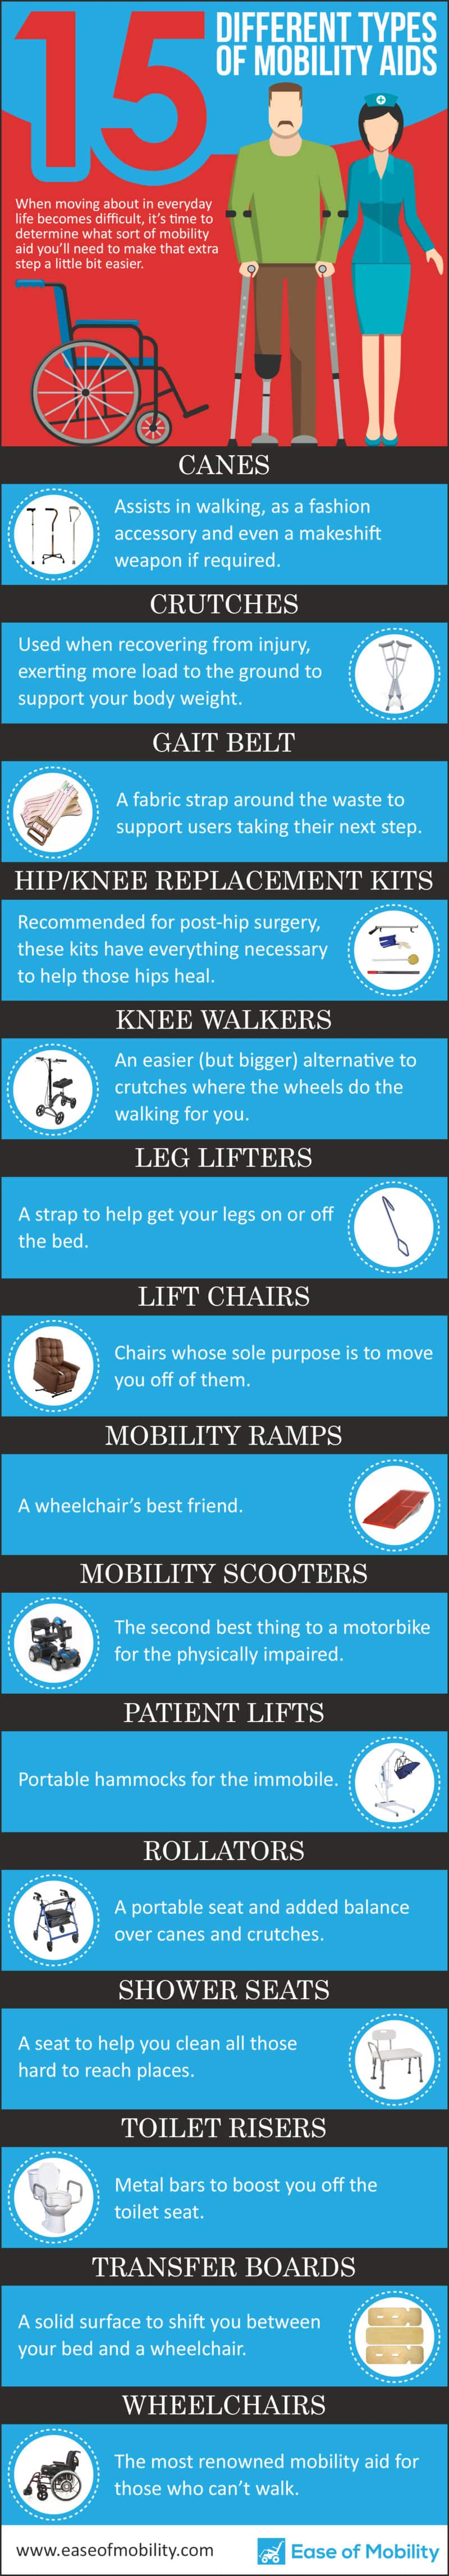 15 Different Types of Mobility Aids